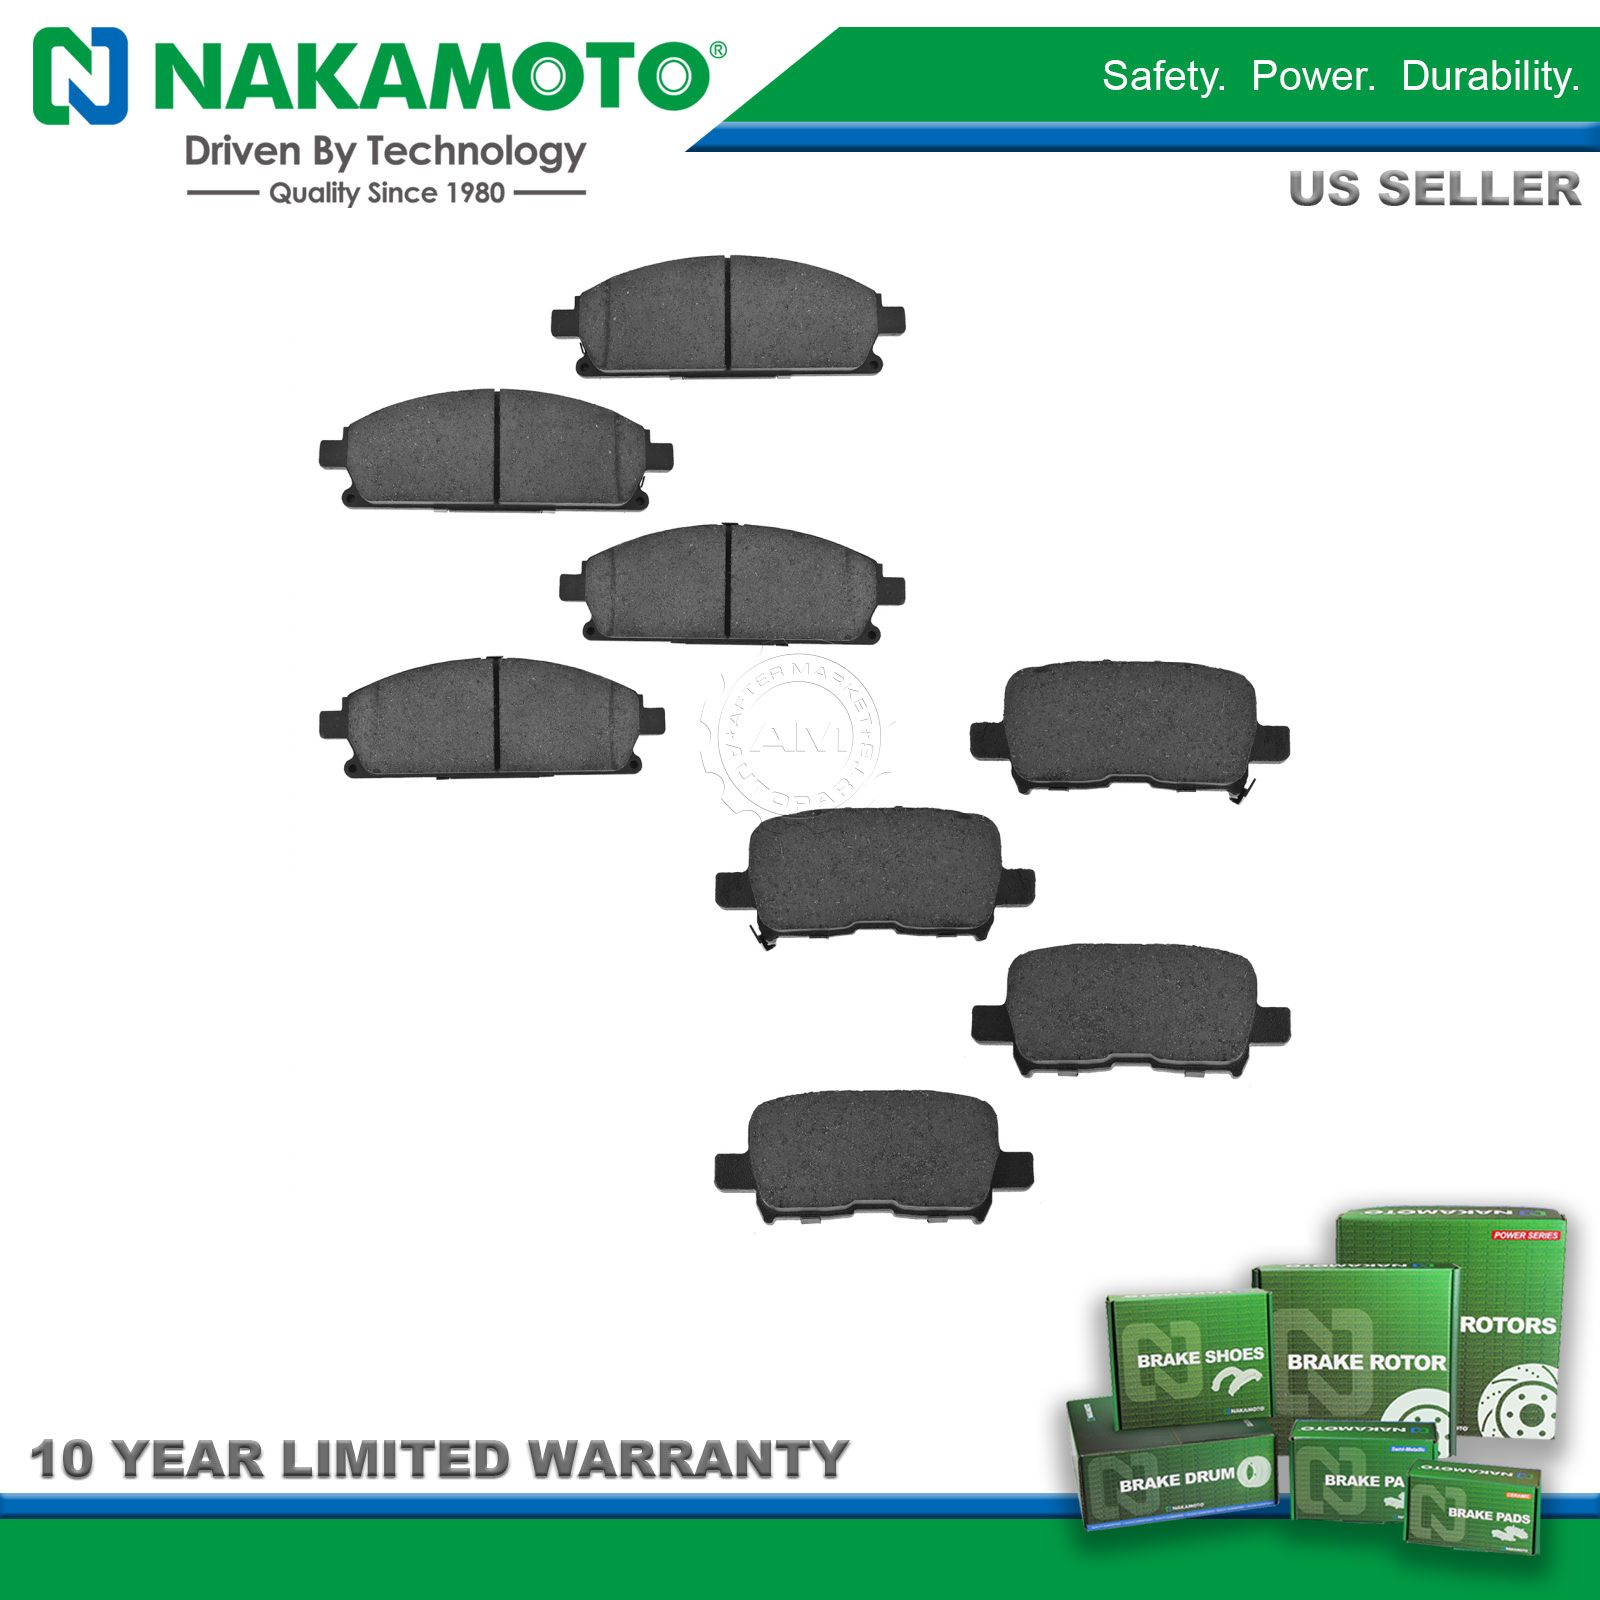 Nakamoto Front & Rear Ceramic Brake Pad Kit Set for Acura ...